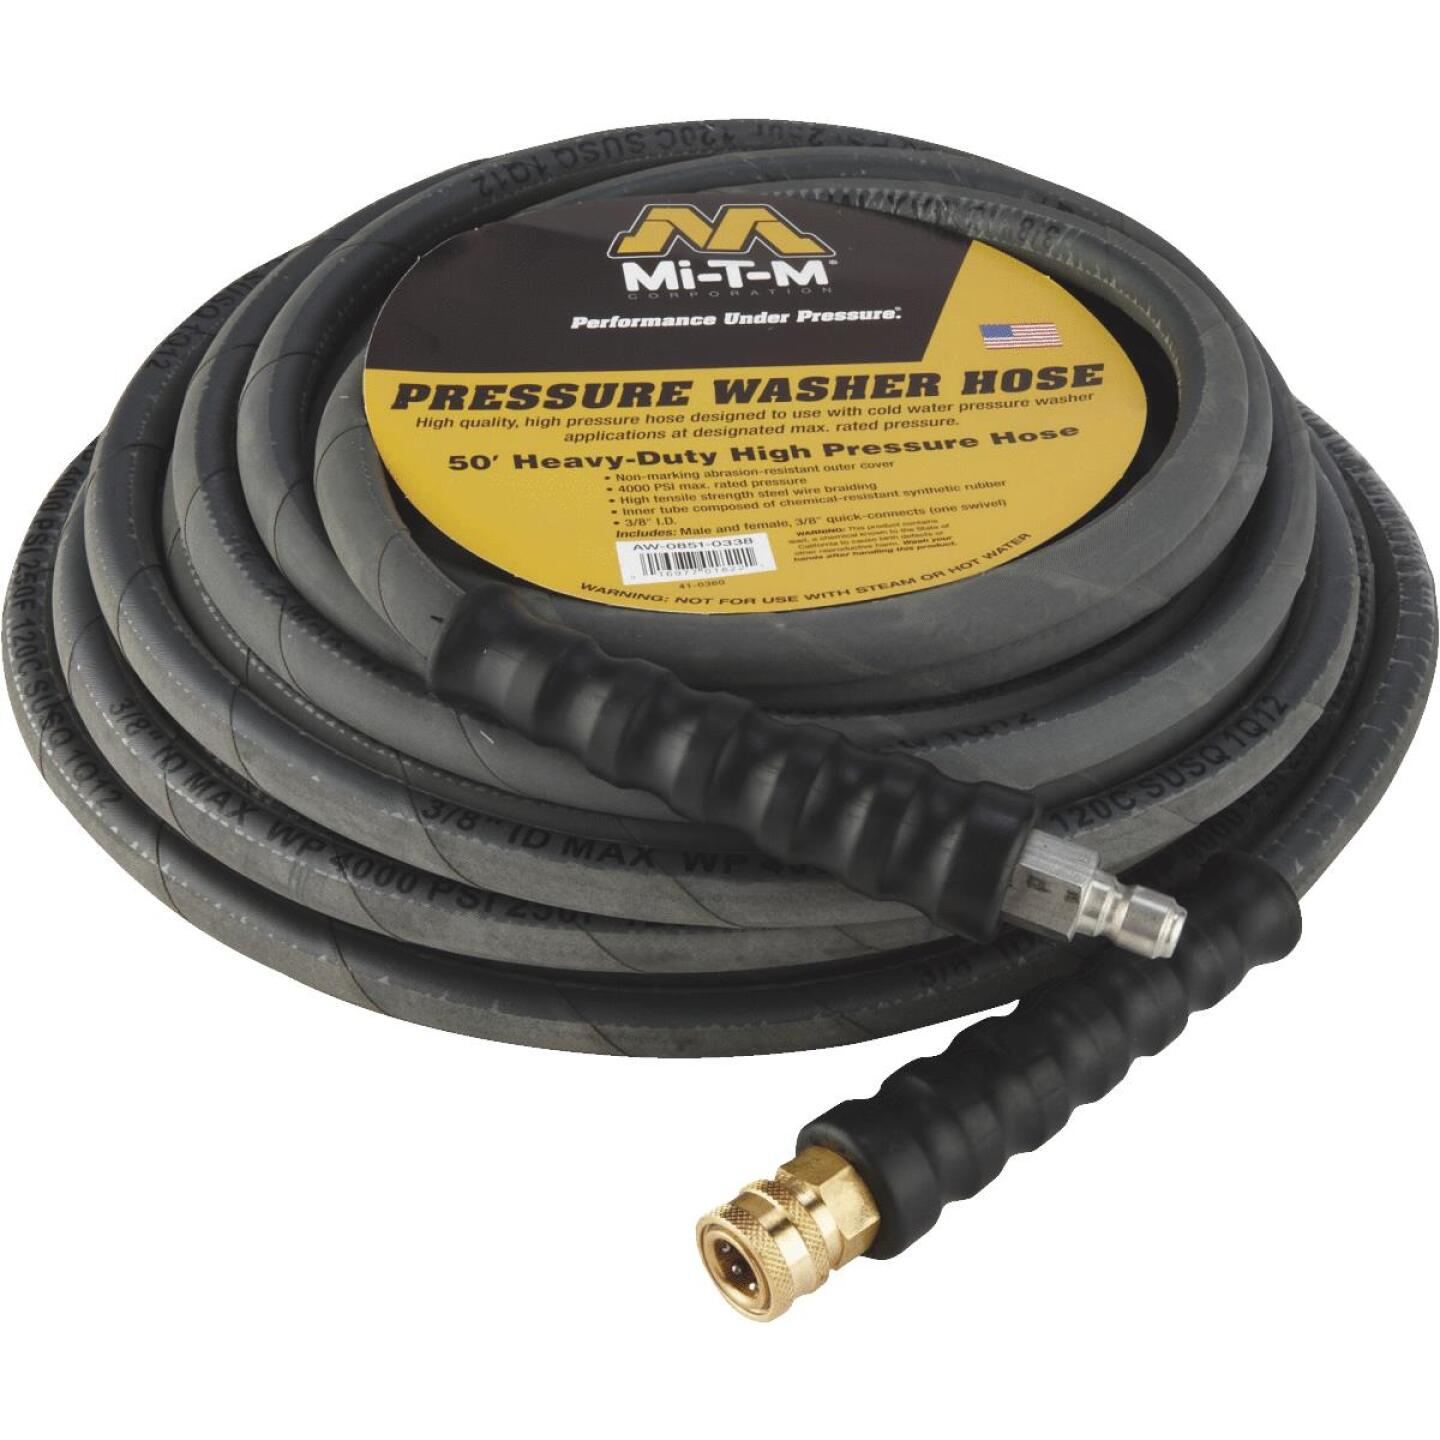 Mi-T-M 3/8 In. x 50 Ft. 4000 psi Heavy Duty Pressure Washer Hose Image 3